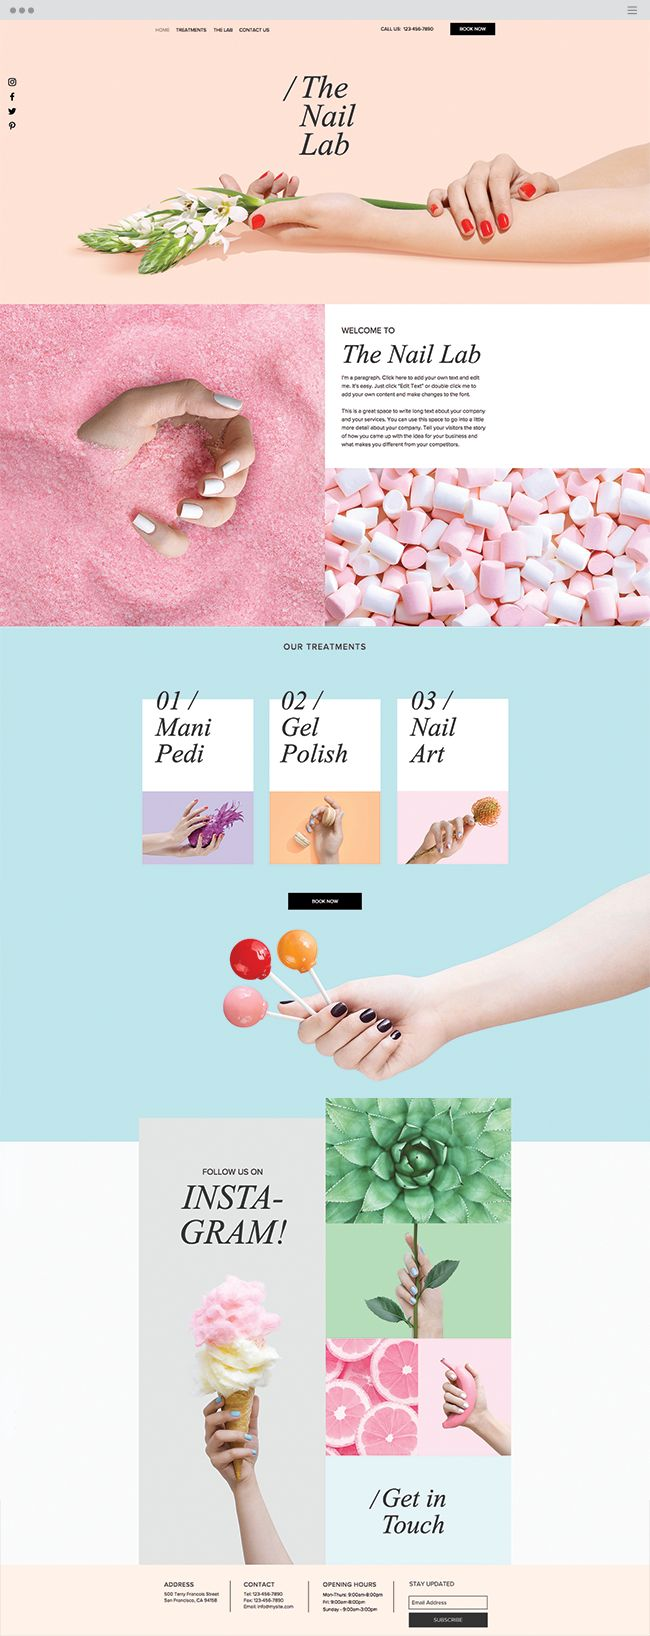 The Nail Lab Website Template